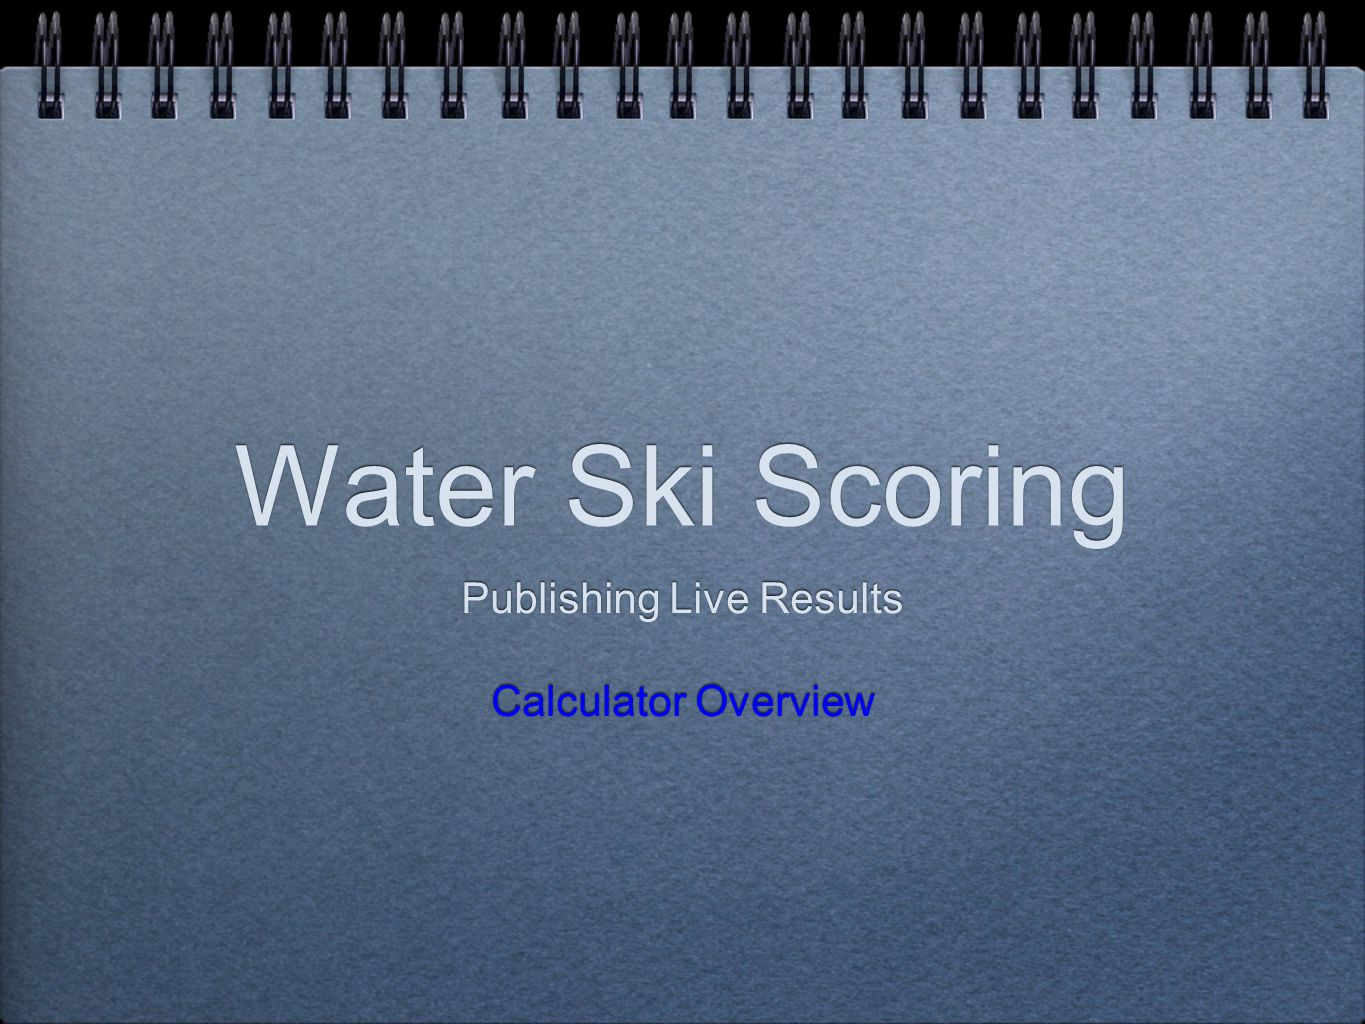 Water Ski Scoring Publishing Live Results Calculator Overview Publishing Live Results Calculator Overview